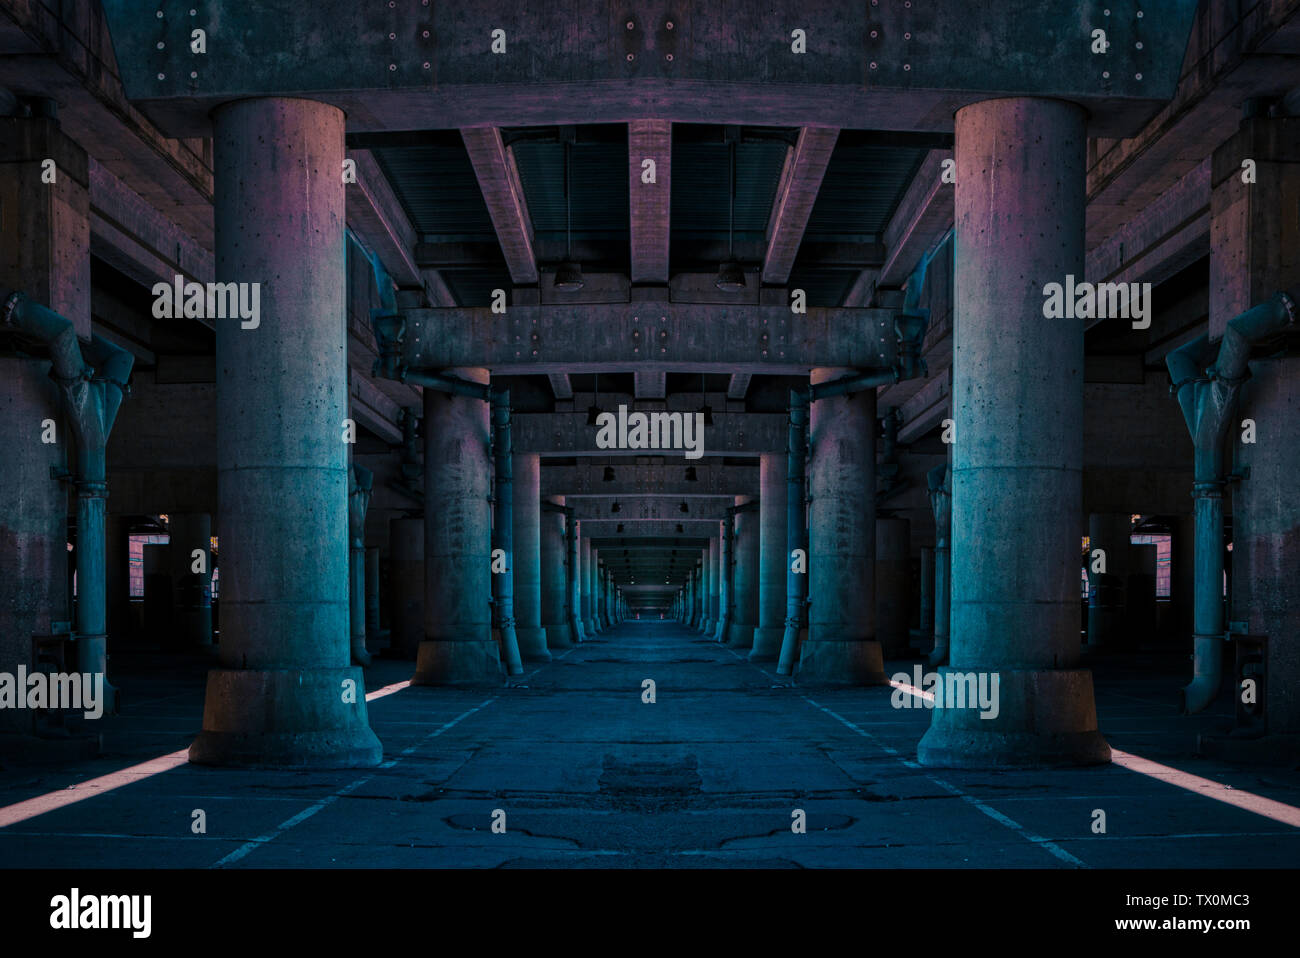 A long passageway with tall, thick columns with an eerie pink and blue color tone - Stock Image